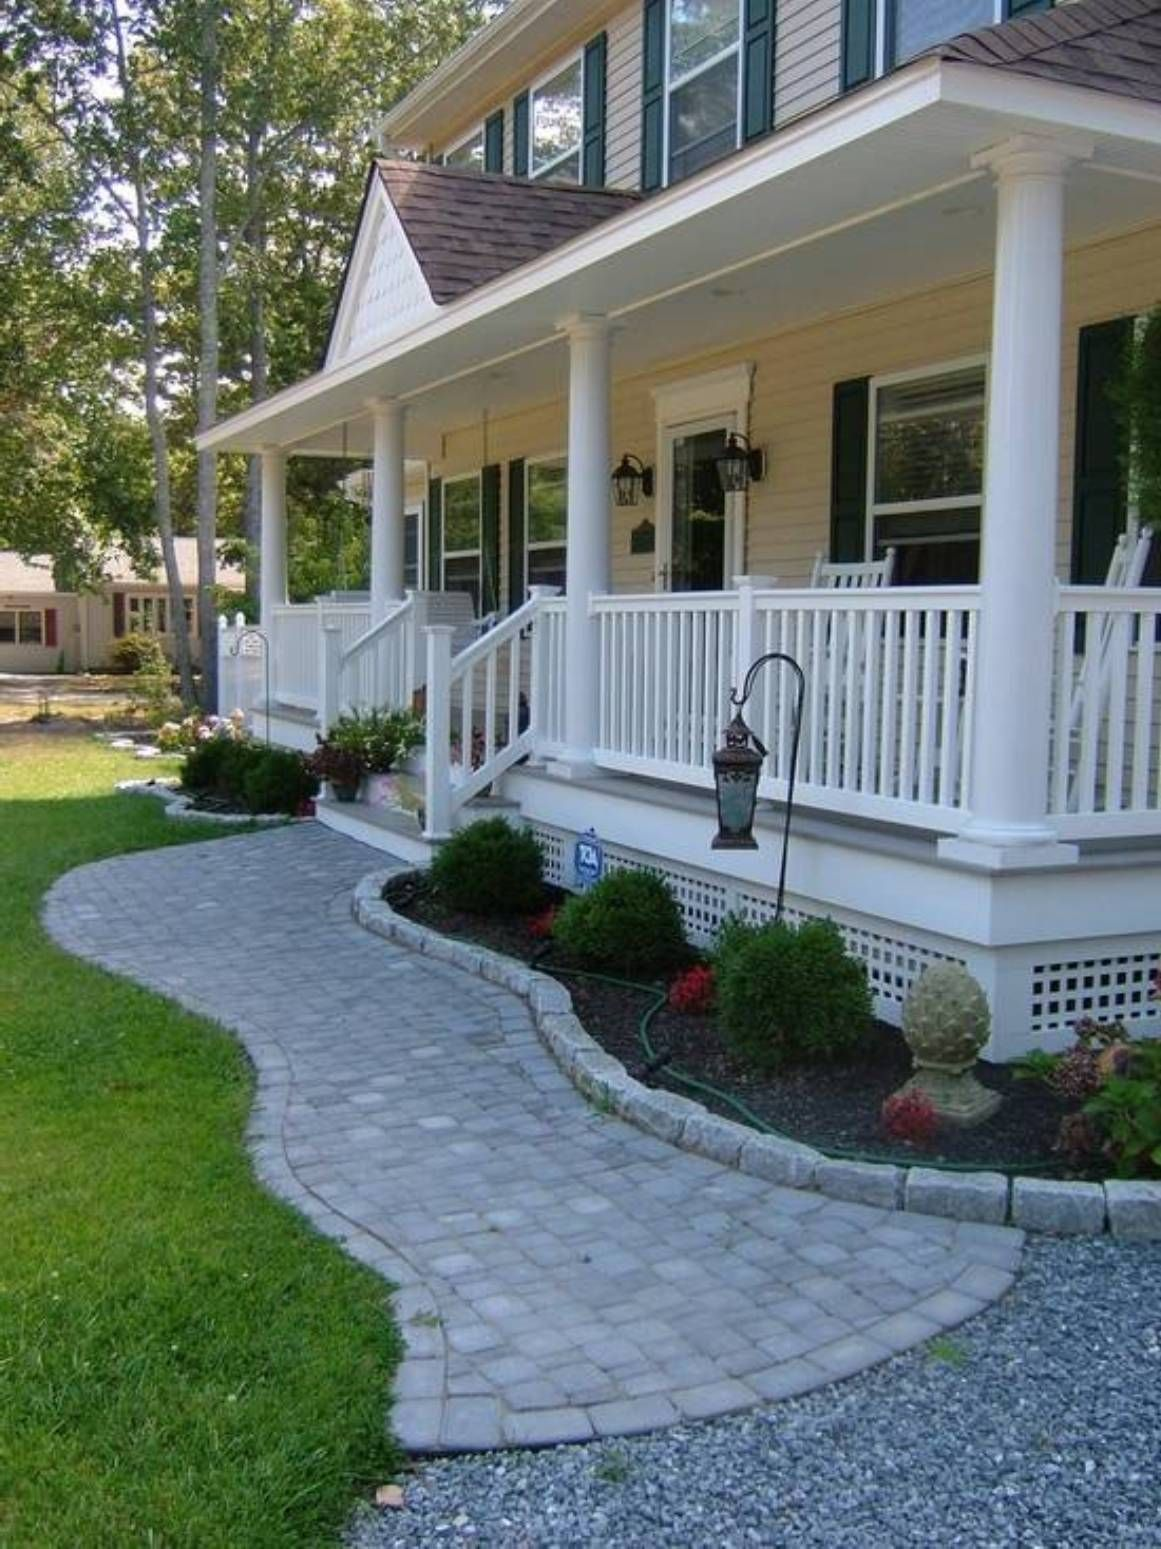 Landscaping And Outdoor Building , Home Front Porch